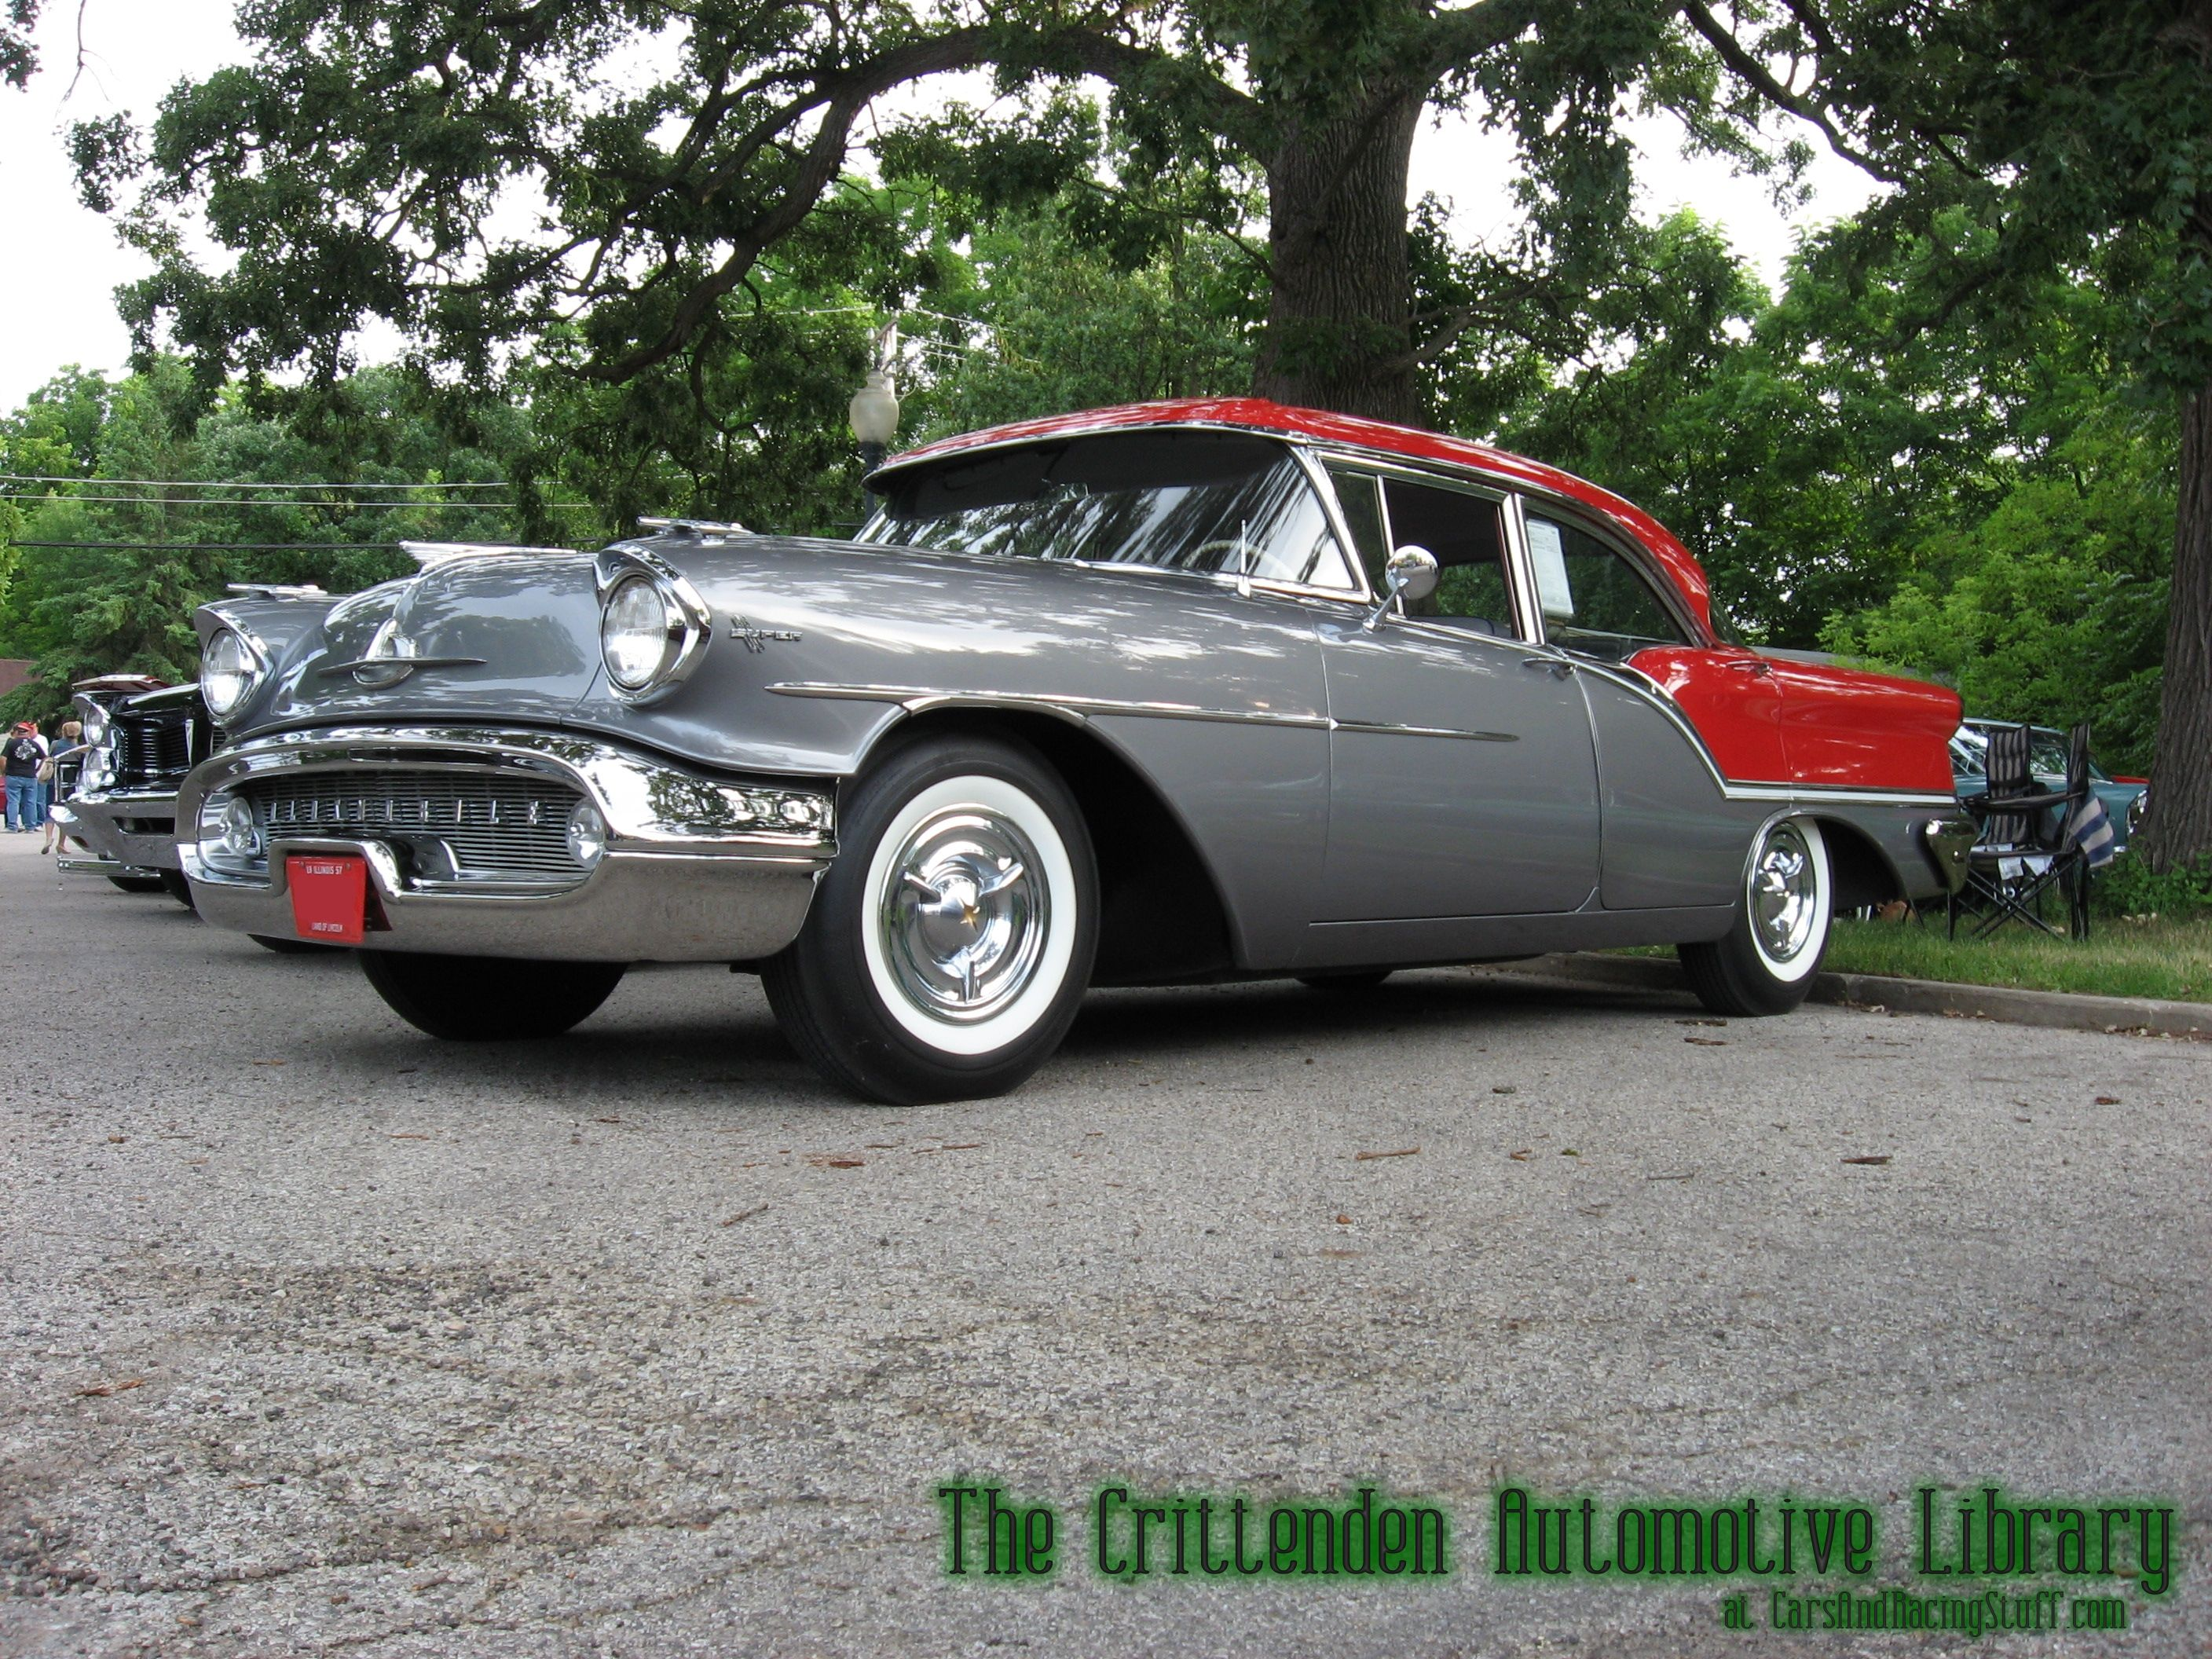 1957 oldsmobile rocket 88 - Google Search